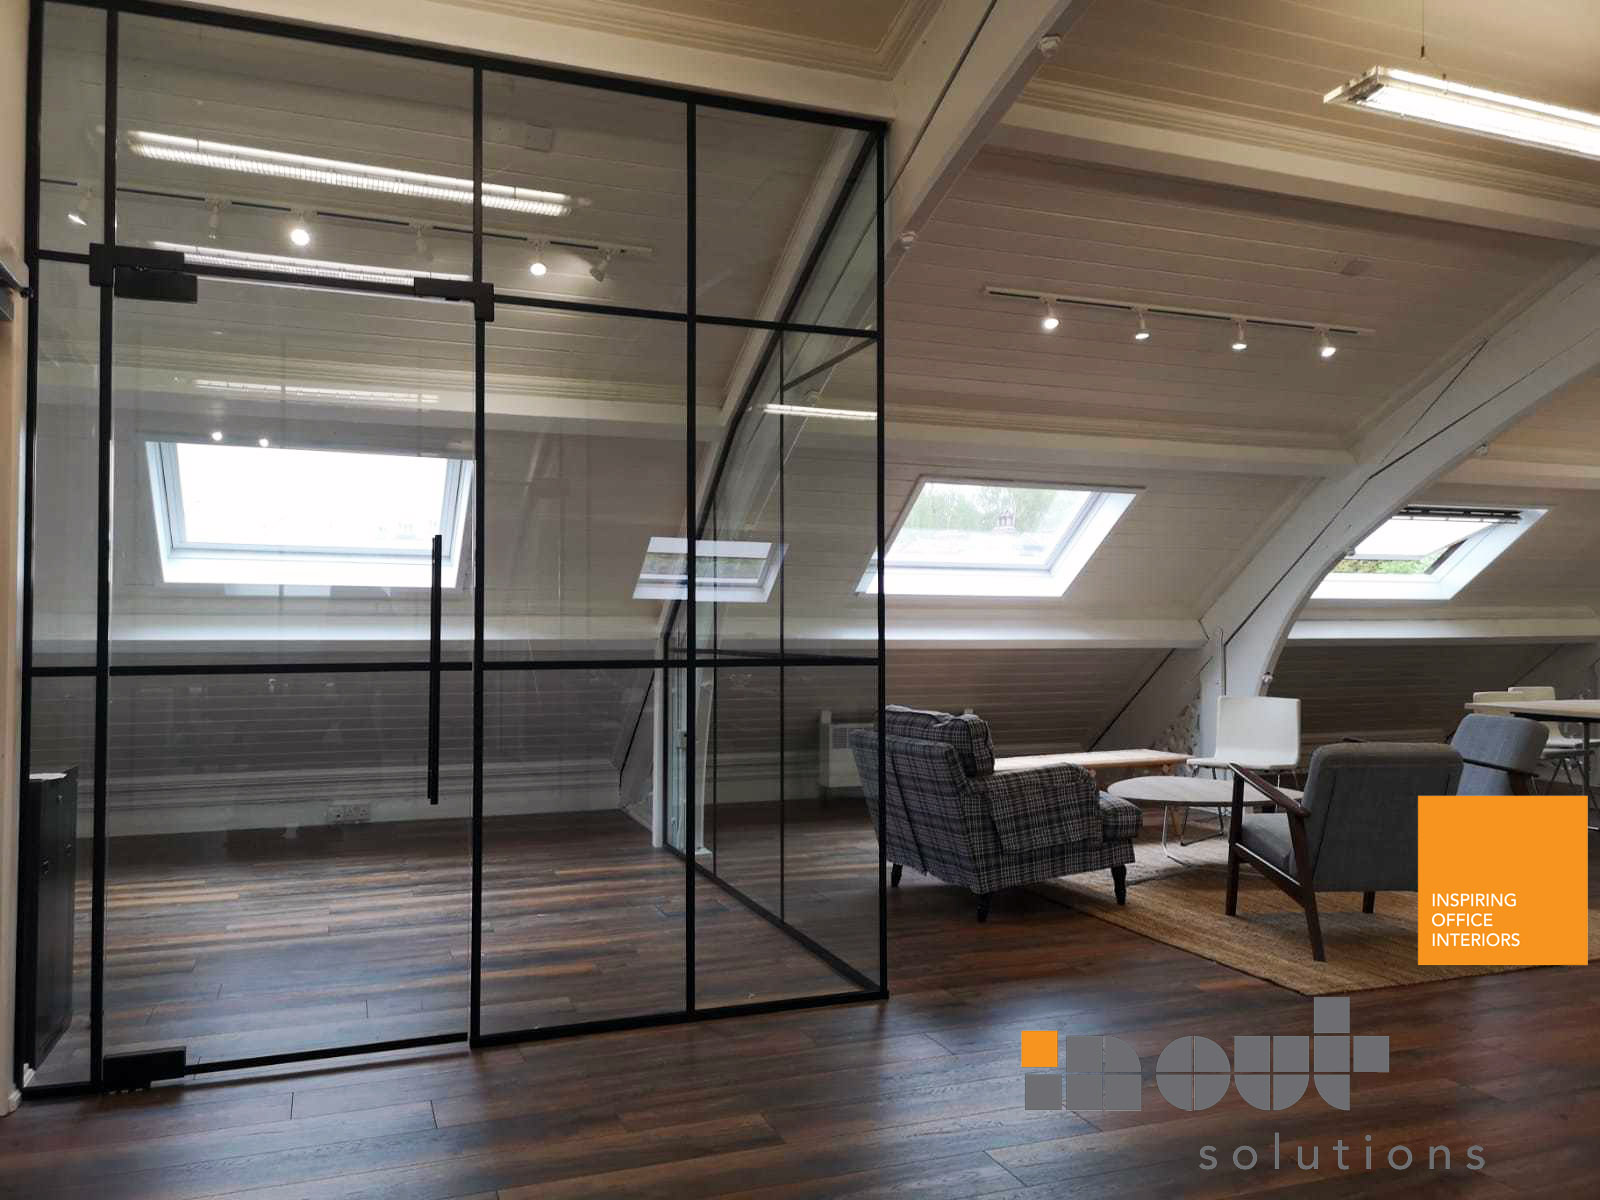 Glass Office Partitions, Frameless Glazed Partitioning, Glass Walls, glass office walls, Office Partitions, UK, Nationwide, Glass Room Dividers UK, Glass Partition Walls, Glass Office Partitions Prices UK Nationwide, glazed office partitions, industrial glass partitions uk nationwide, Double Glass Doors, Sliding Glass Doors Internal glass walls, Internal glass dividers, Domestic Glass Walls, Residential Glass Walls UK Nationwide, Glass Office Partitioning Systems UK